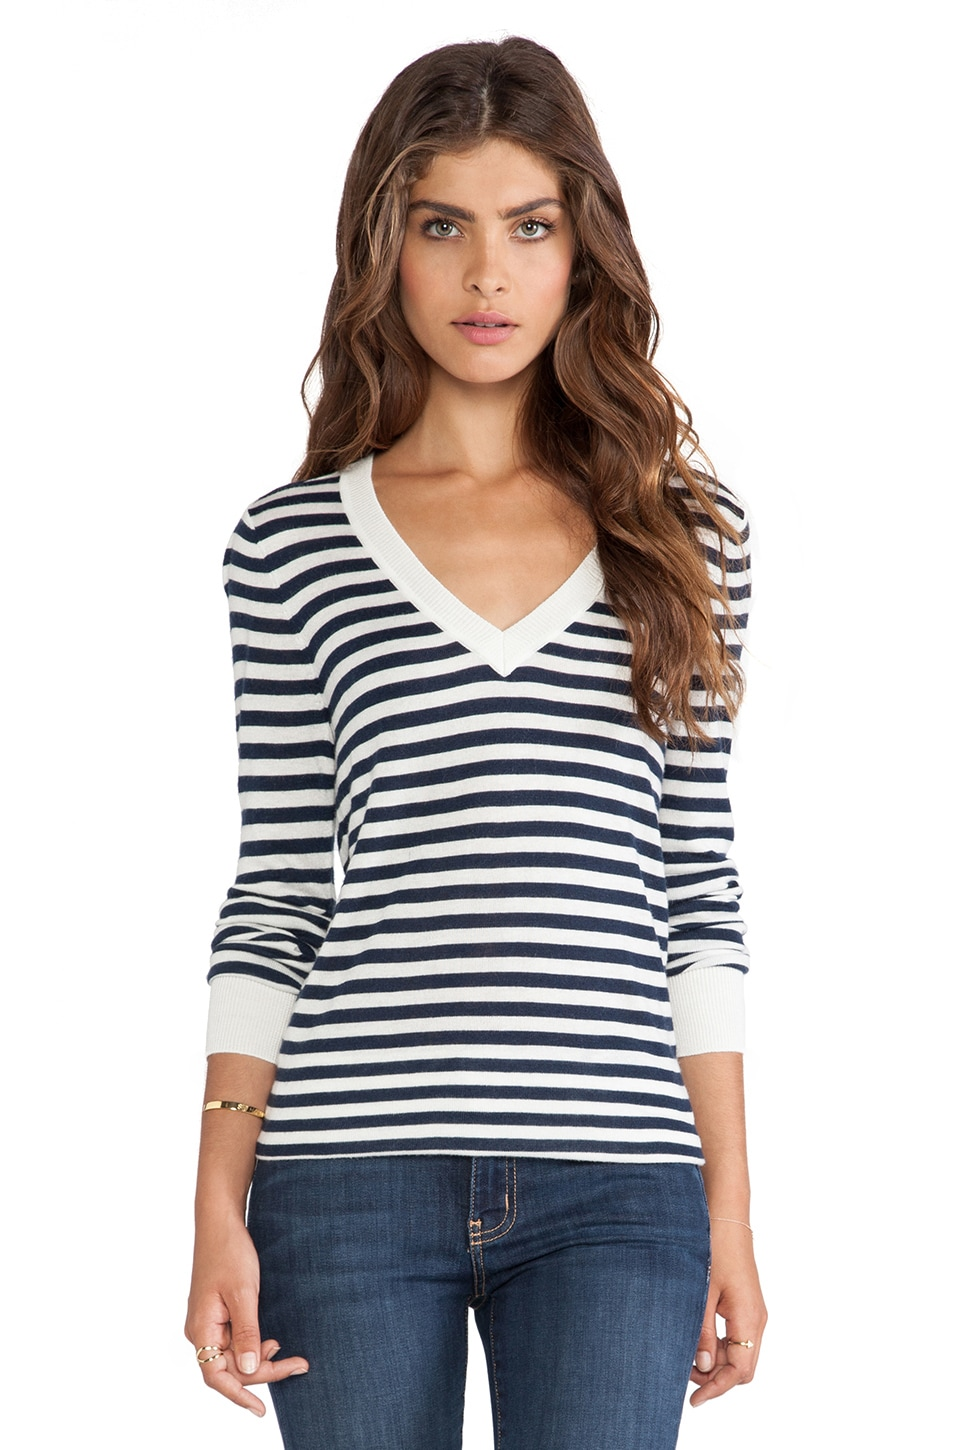 Splendid Cashmere Blend V Neck Striped Sweater in Navy